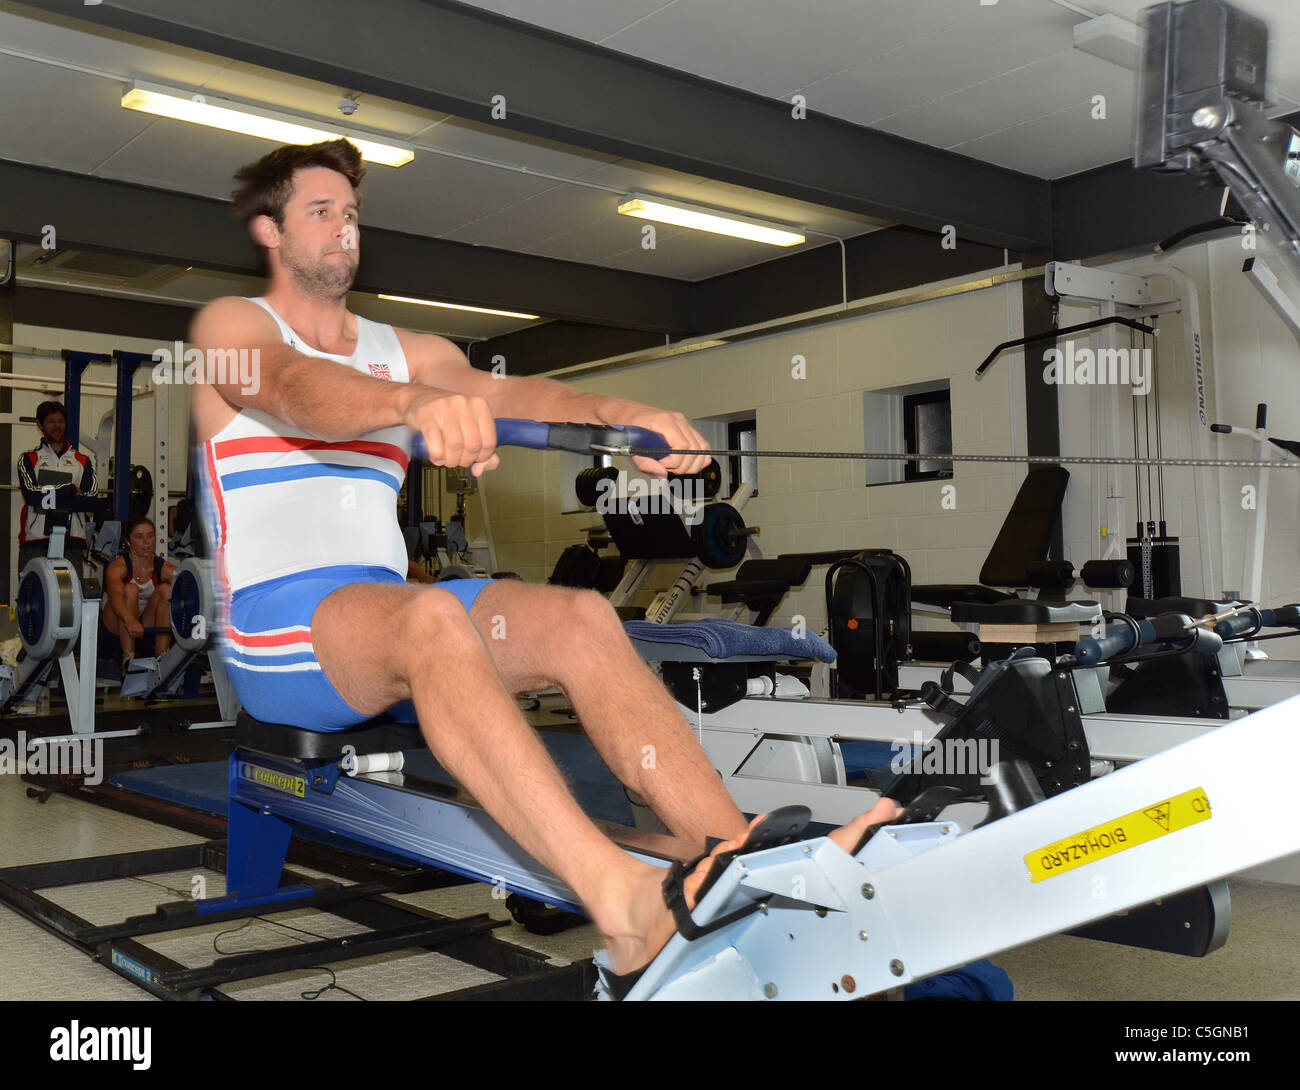 Tom James,GBR rowing team, training on a rowing machine in gymnasium at the Redgrave Pinsent Rowing Lake and Sherriff - Stock Image